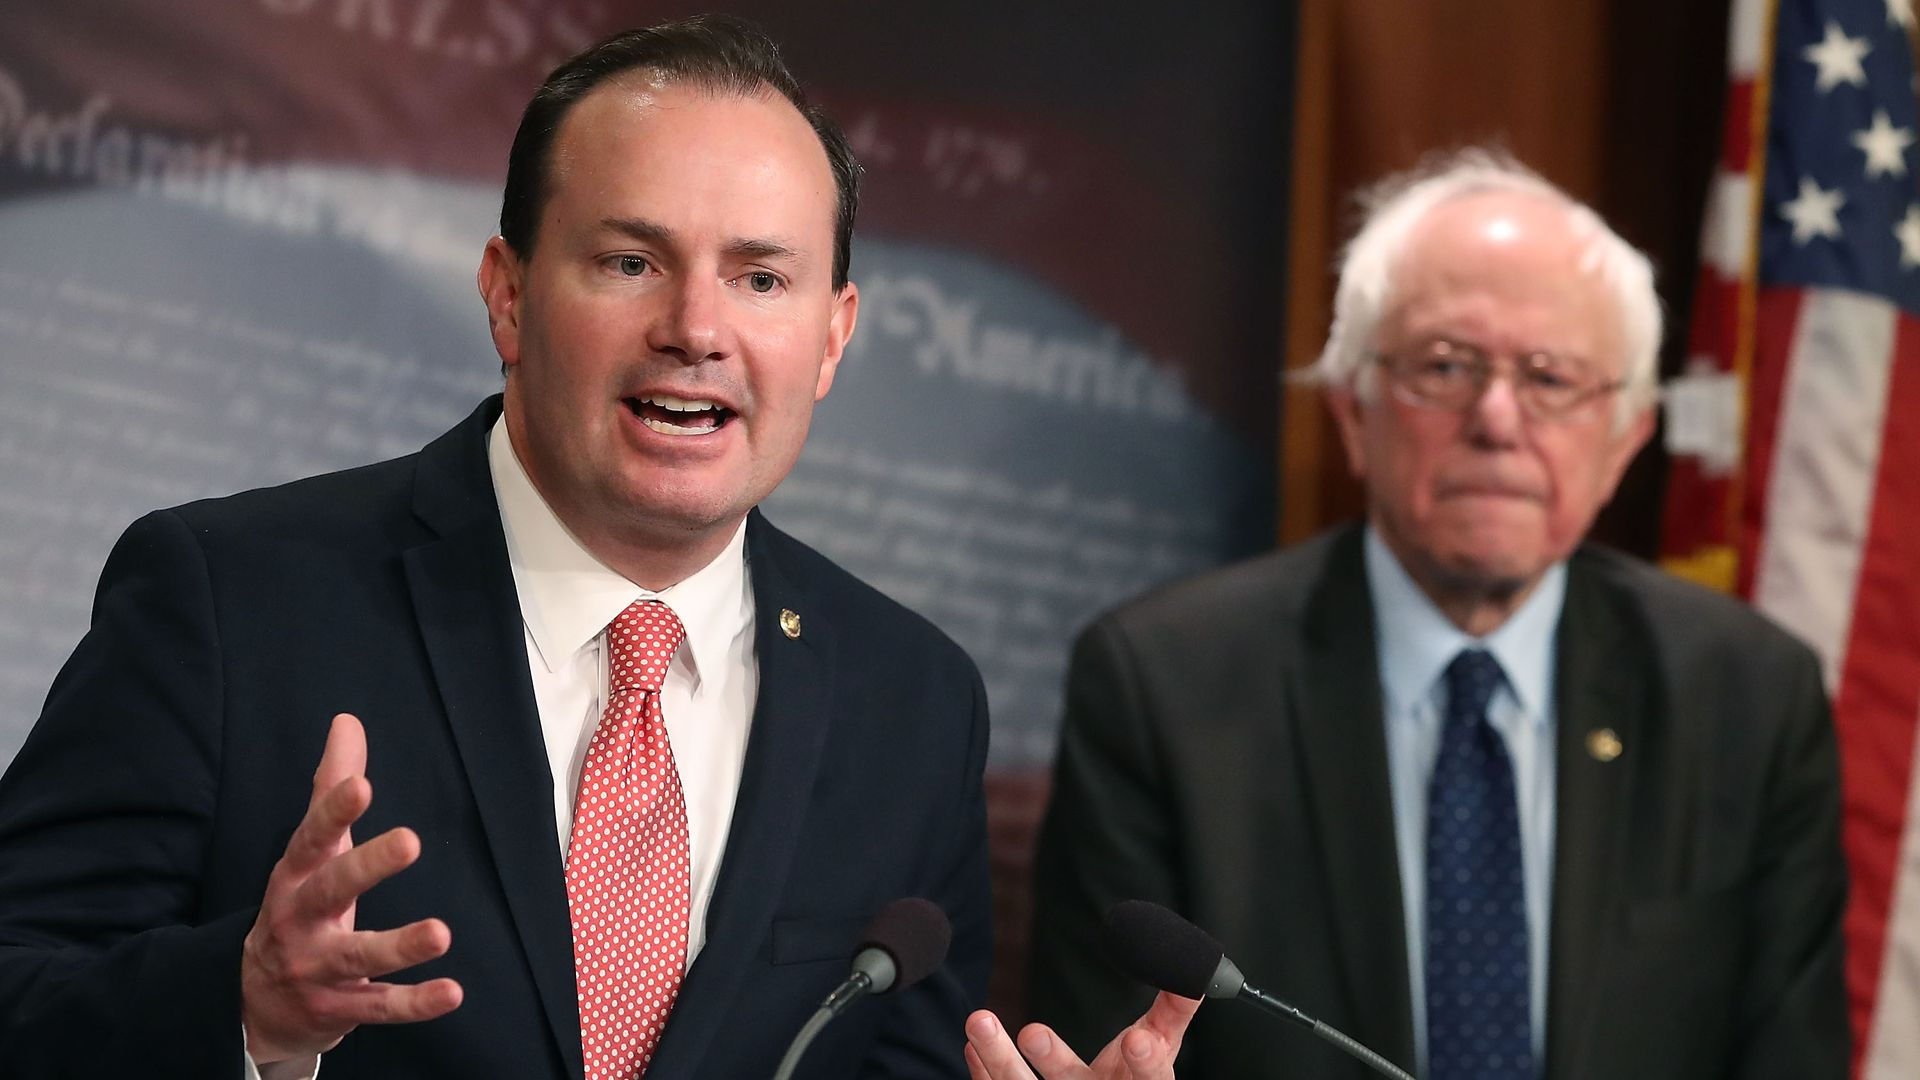 Sen. Mike Lee and Sen. Bernie Sanders introduce a joint resolution to remove U.S. armed forces from Yemen.